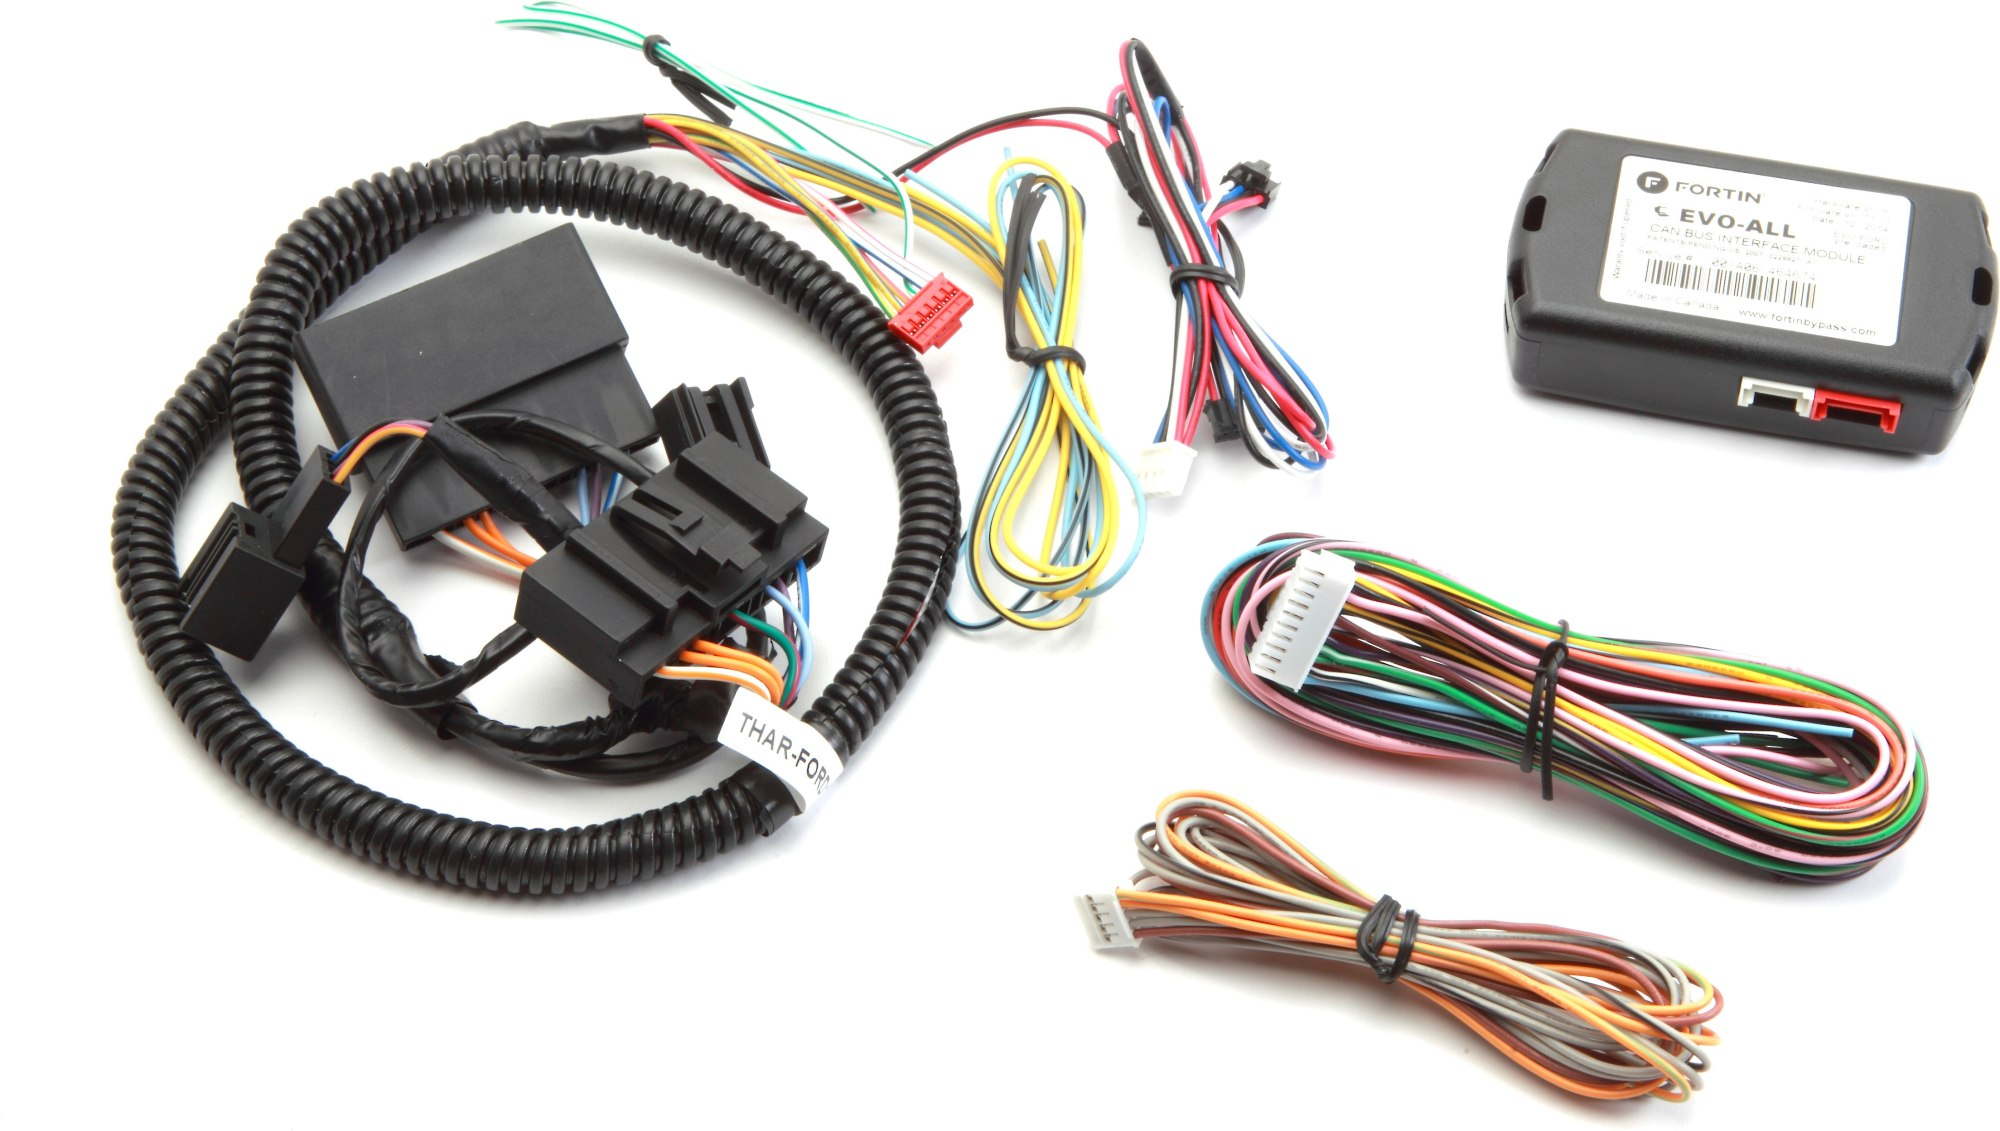 hight resolution of t1 digital remote start system for select 2008 up ford vehicles at crutchfield